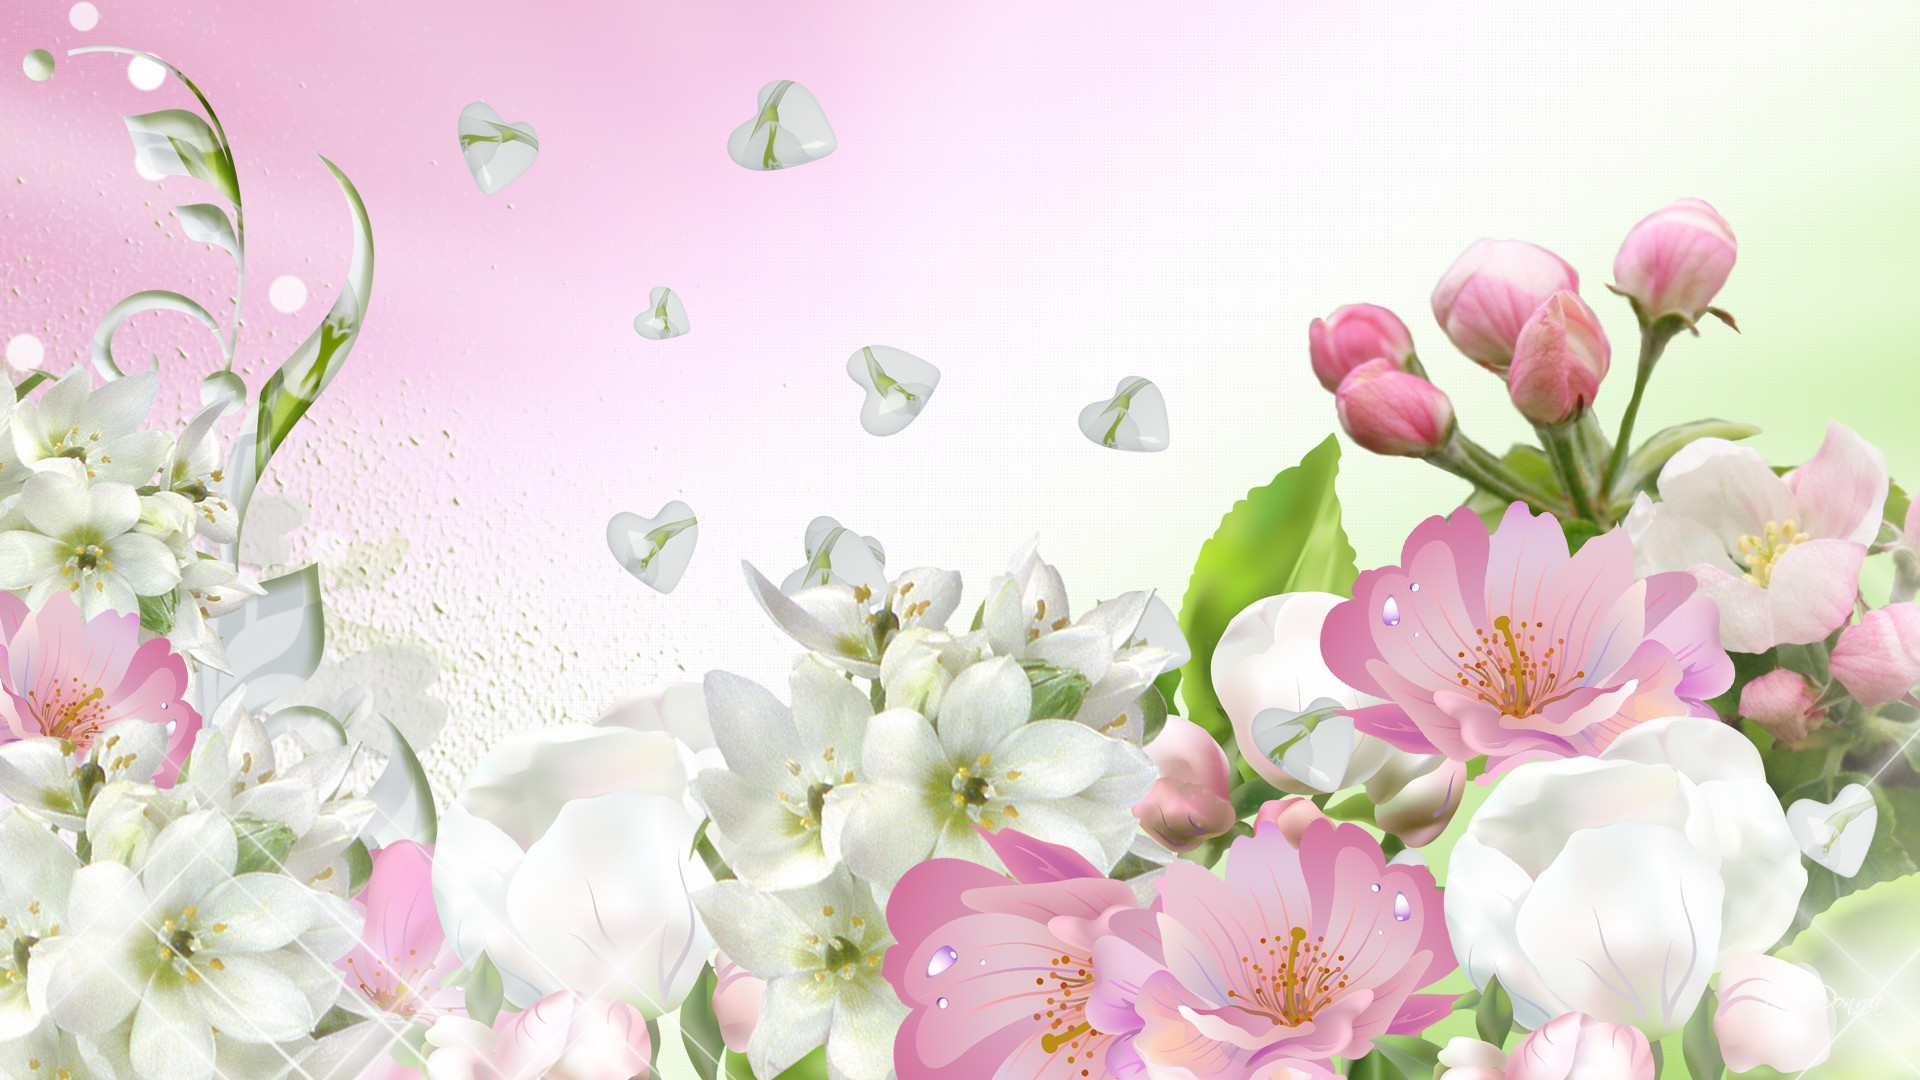 Apple Blossom Spring wallpaper   ForWallpapercom 1920x1080